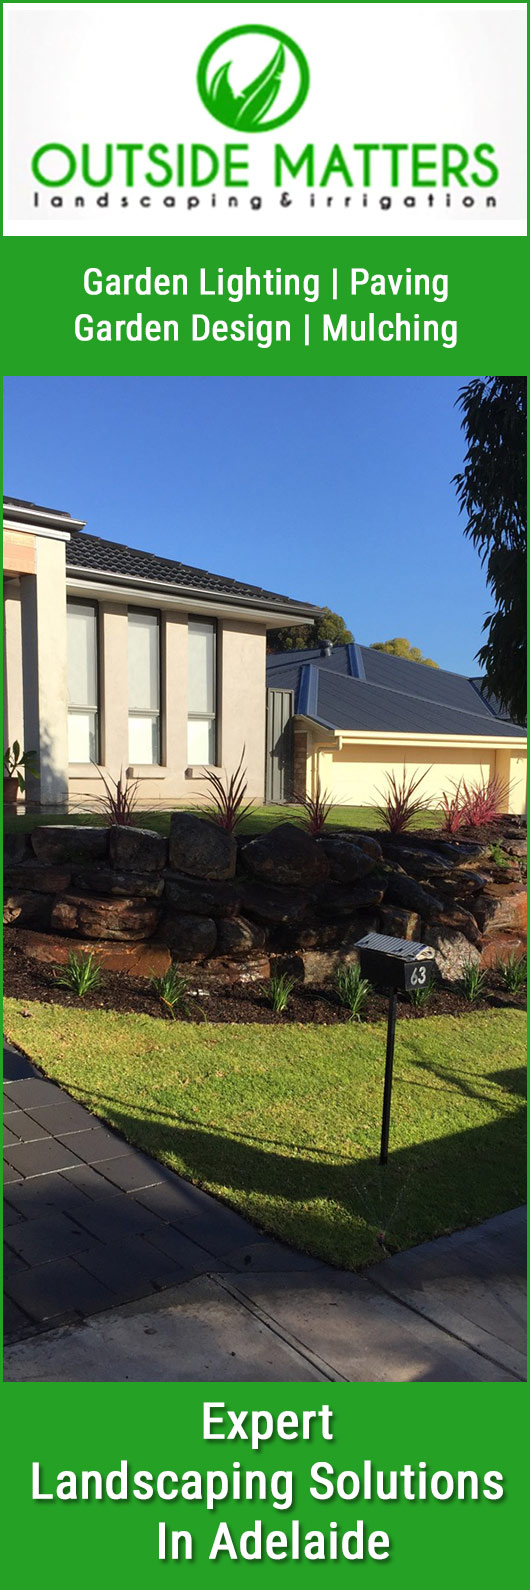 Outside matters landscaping irrigation adelaide for Landscape architect adelaide